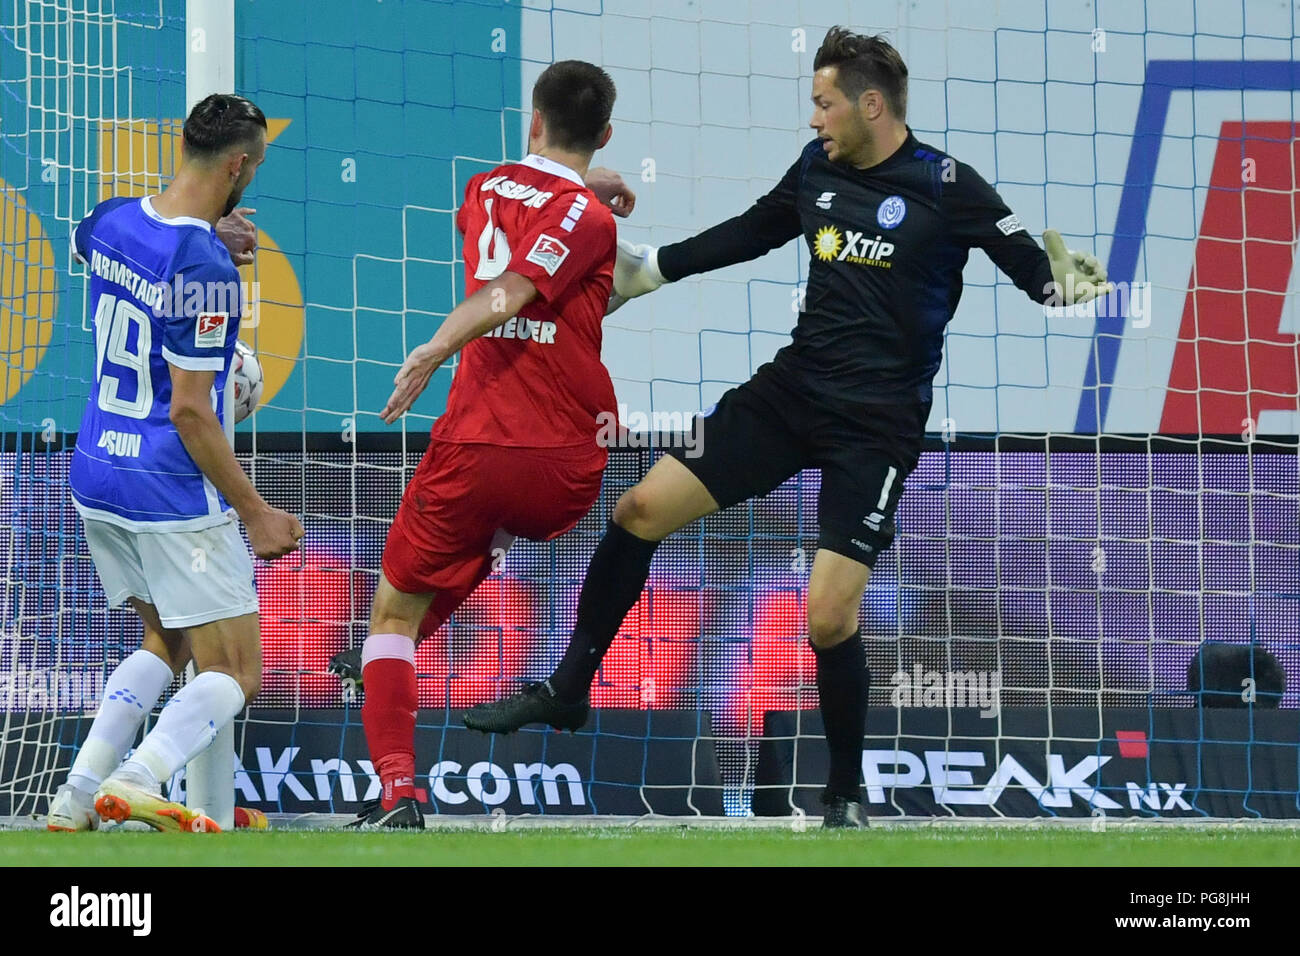 Darmstadt, Germany. 24th Aug, 2018. Soccer, 2nd Bundesliga, Darmstadt 98 vs MSV Duisburg, 3rd Matchday, at the Merck Stadium at Boellenfalltor. Darmstadt's Serdar Dursun (L) scores the 2-0 goal passing Duisburg goalkeeper Daniel Davari (R) and defender Dustin Bomheuer. Credit: Uwe Anspach/dpa - IMPORTANT NOTICE: DFL regulations prohibit any use of photographs as image sequences and/or quasi-video./dpa/Alamy Live News - Stock Image